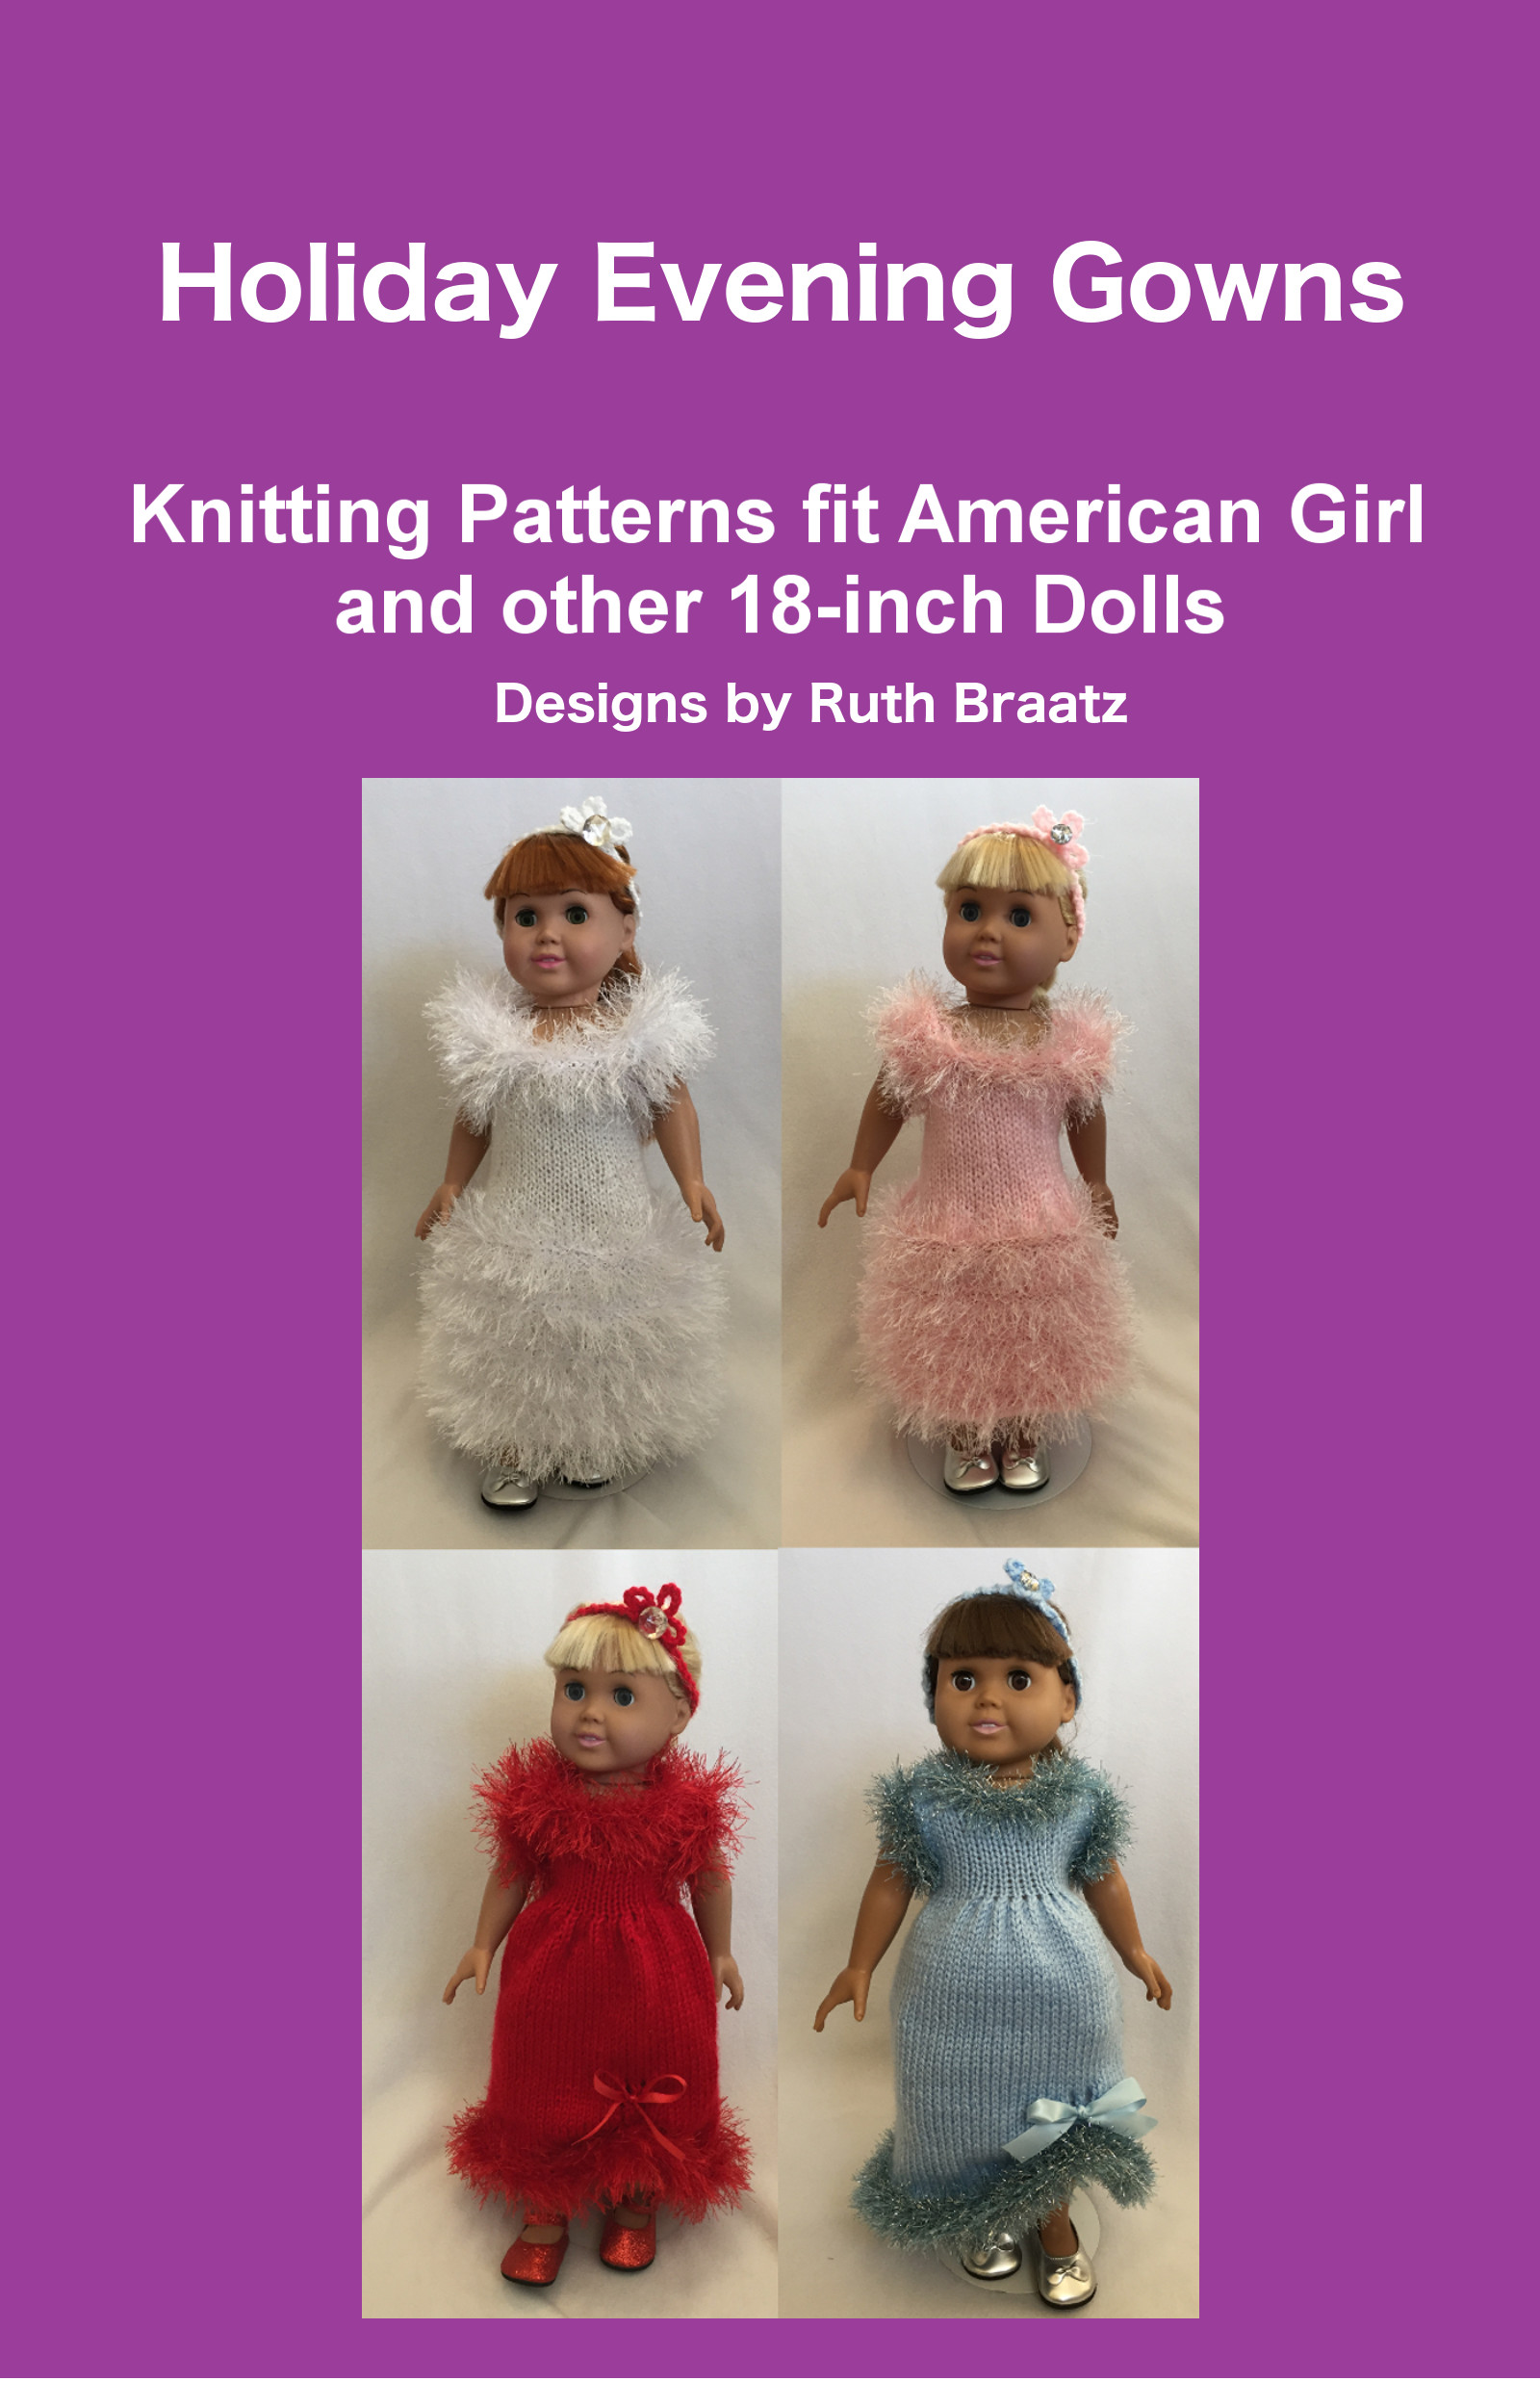 Smashwords – Holiday Evening Gowns, Patterns fit American Girl and ...